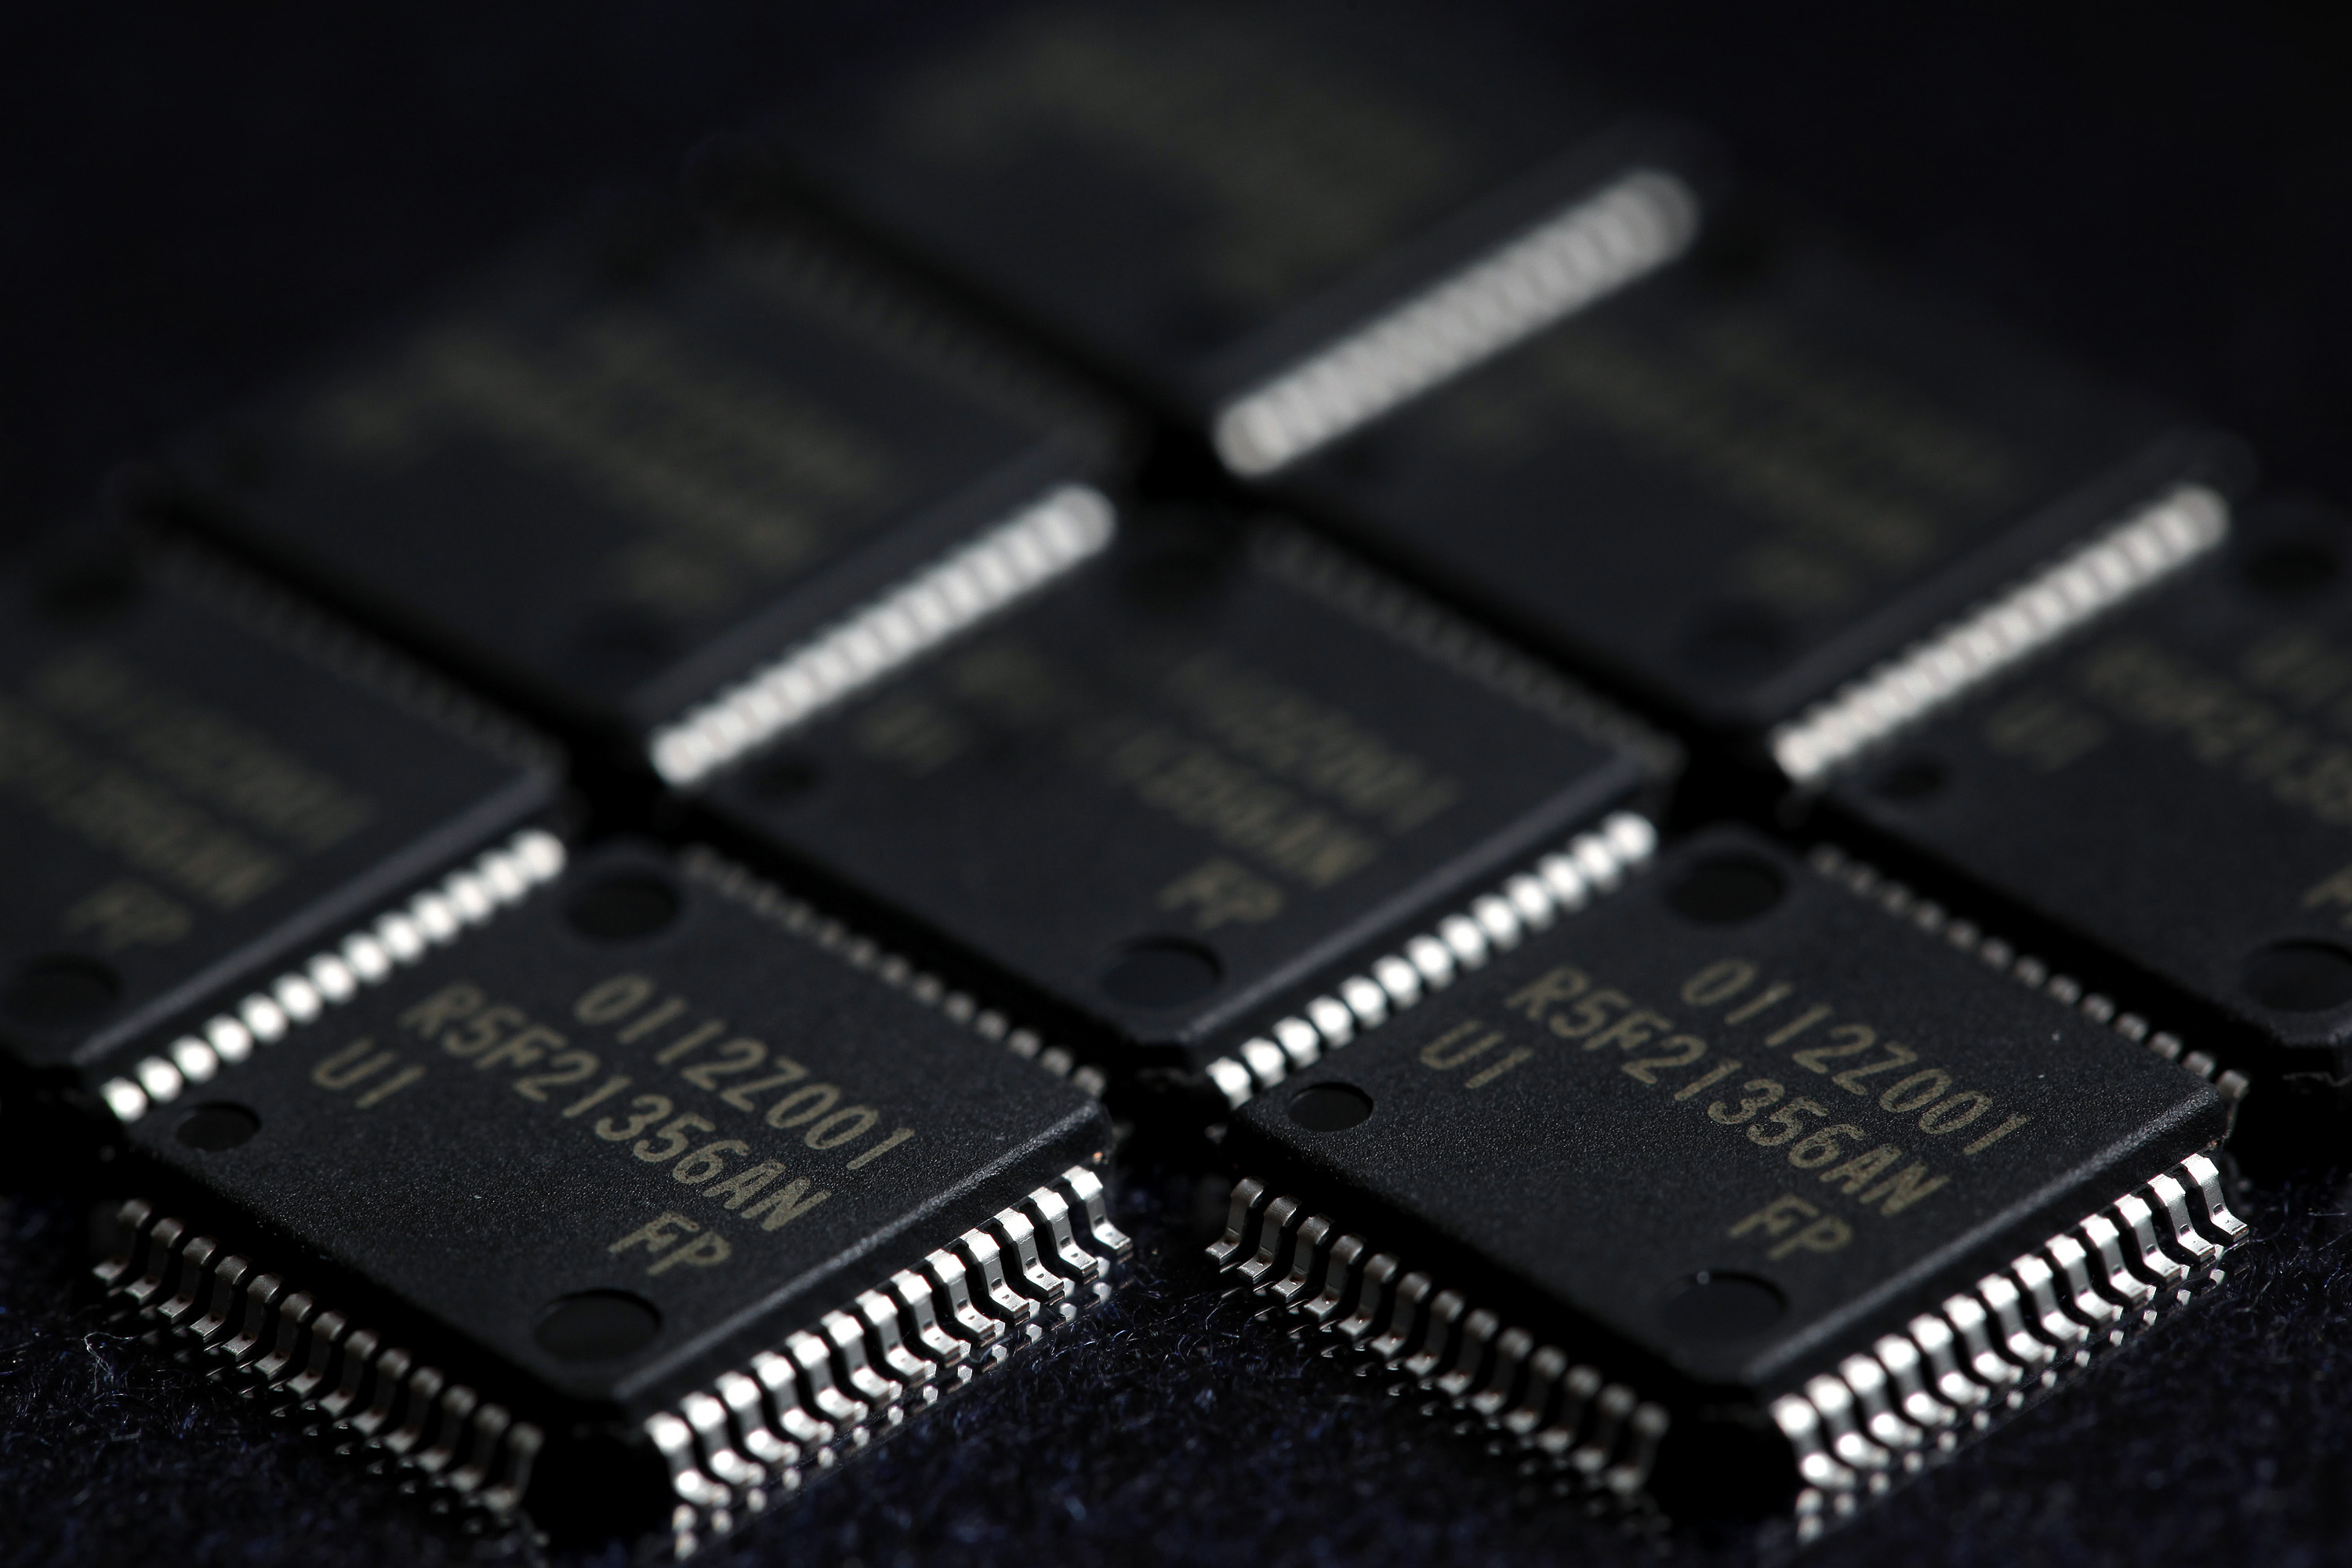 Images of Renesas Electronics Microcontrollers As The Company Holds AGM